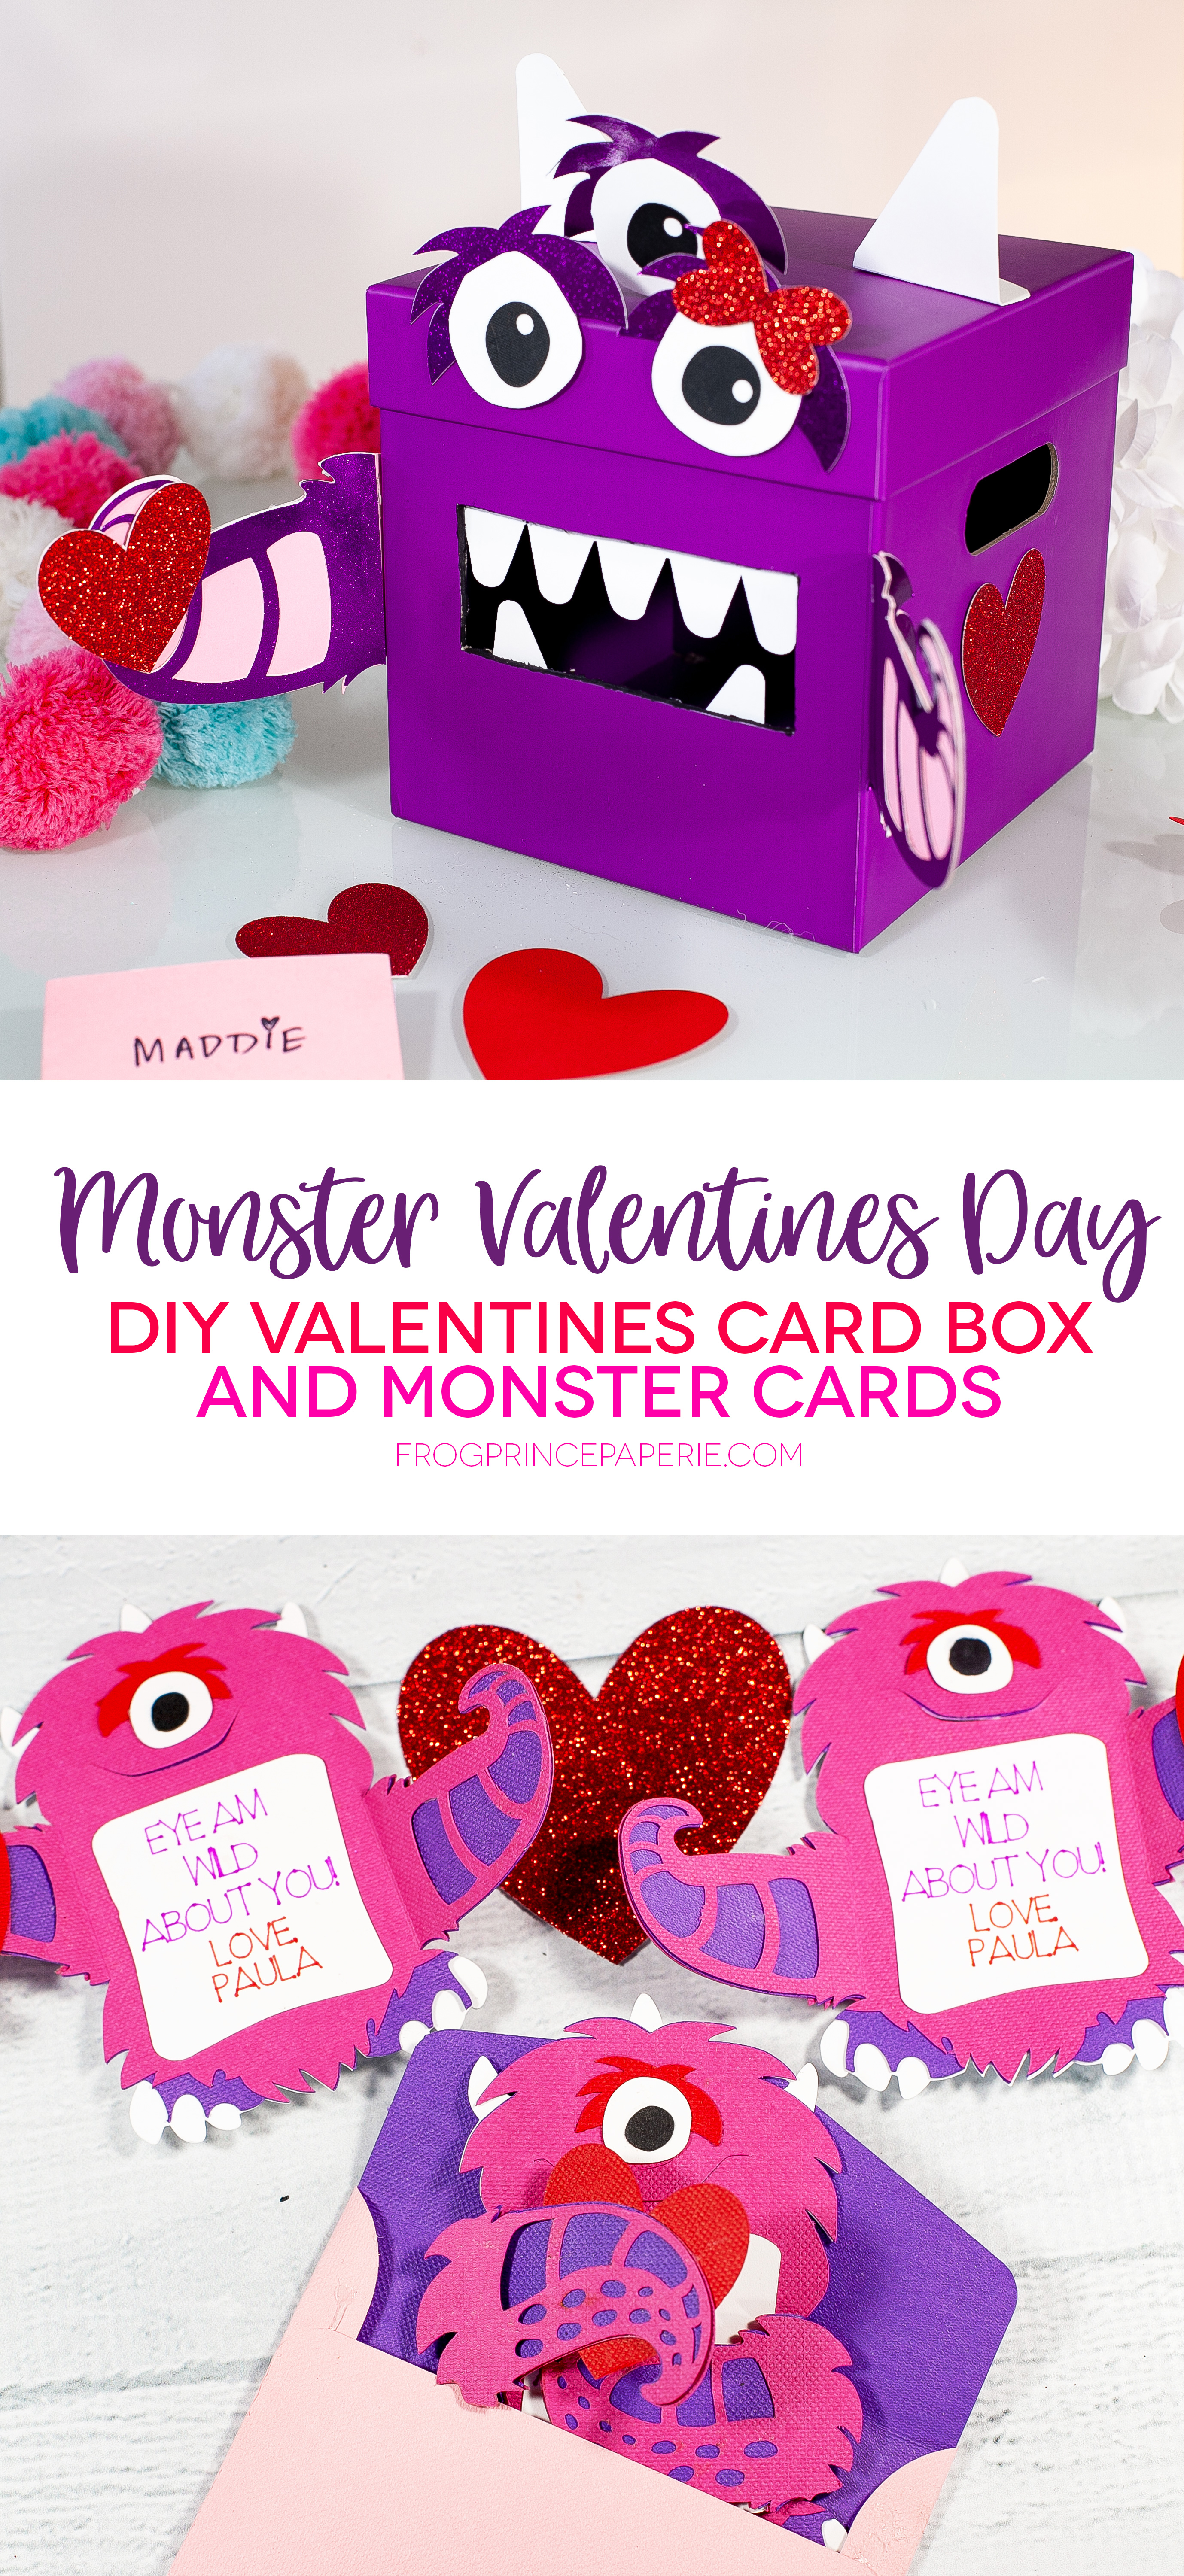 Monster Valentine Card Box and Monster Valentine Card with Cricut Maker